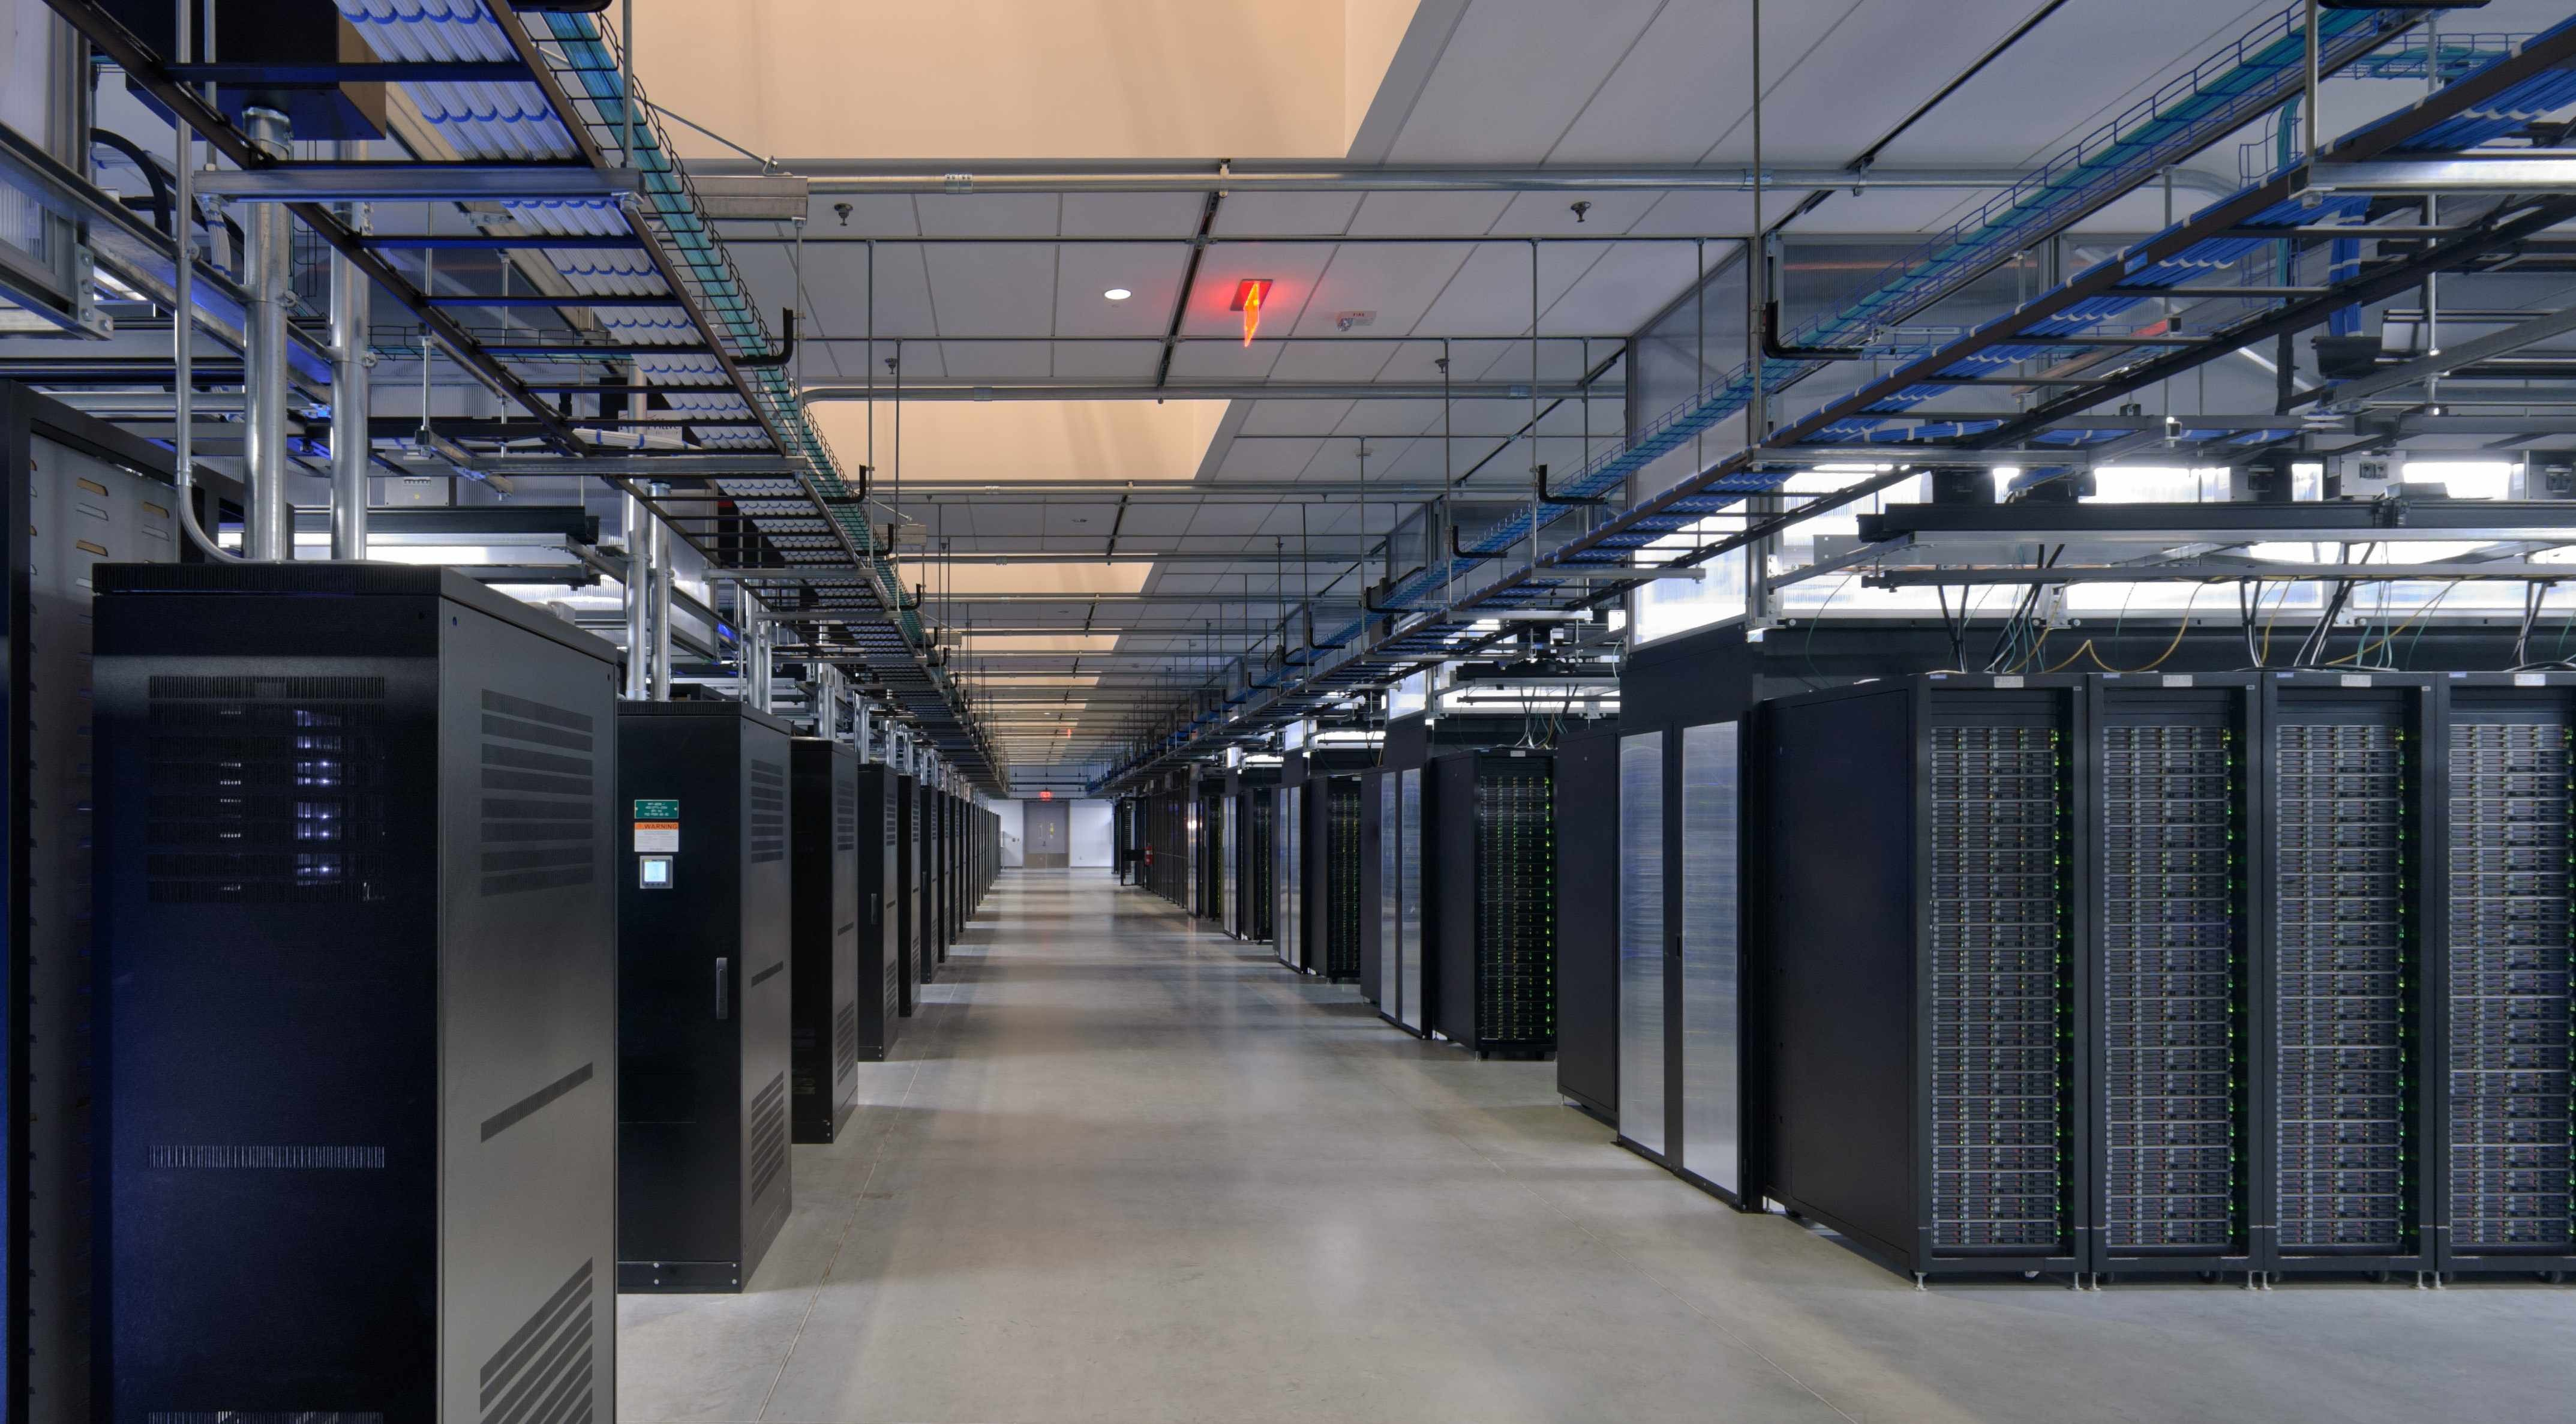 A Facebook data center. The company uses outdated Web encryption, which makes users' communications vulnerable to the National Security Agency. But the social network is planning to upgrade.